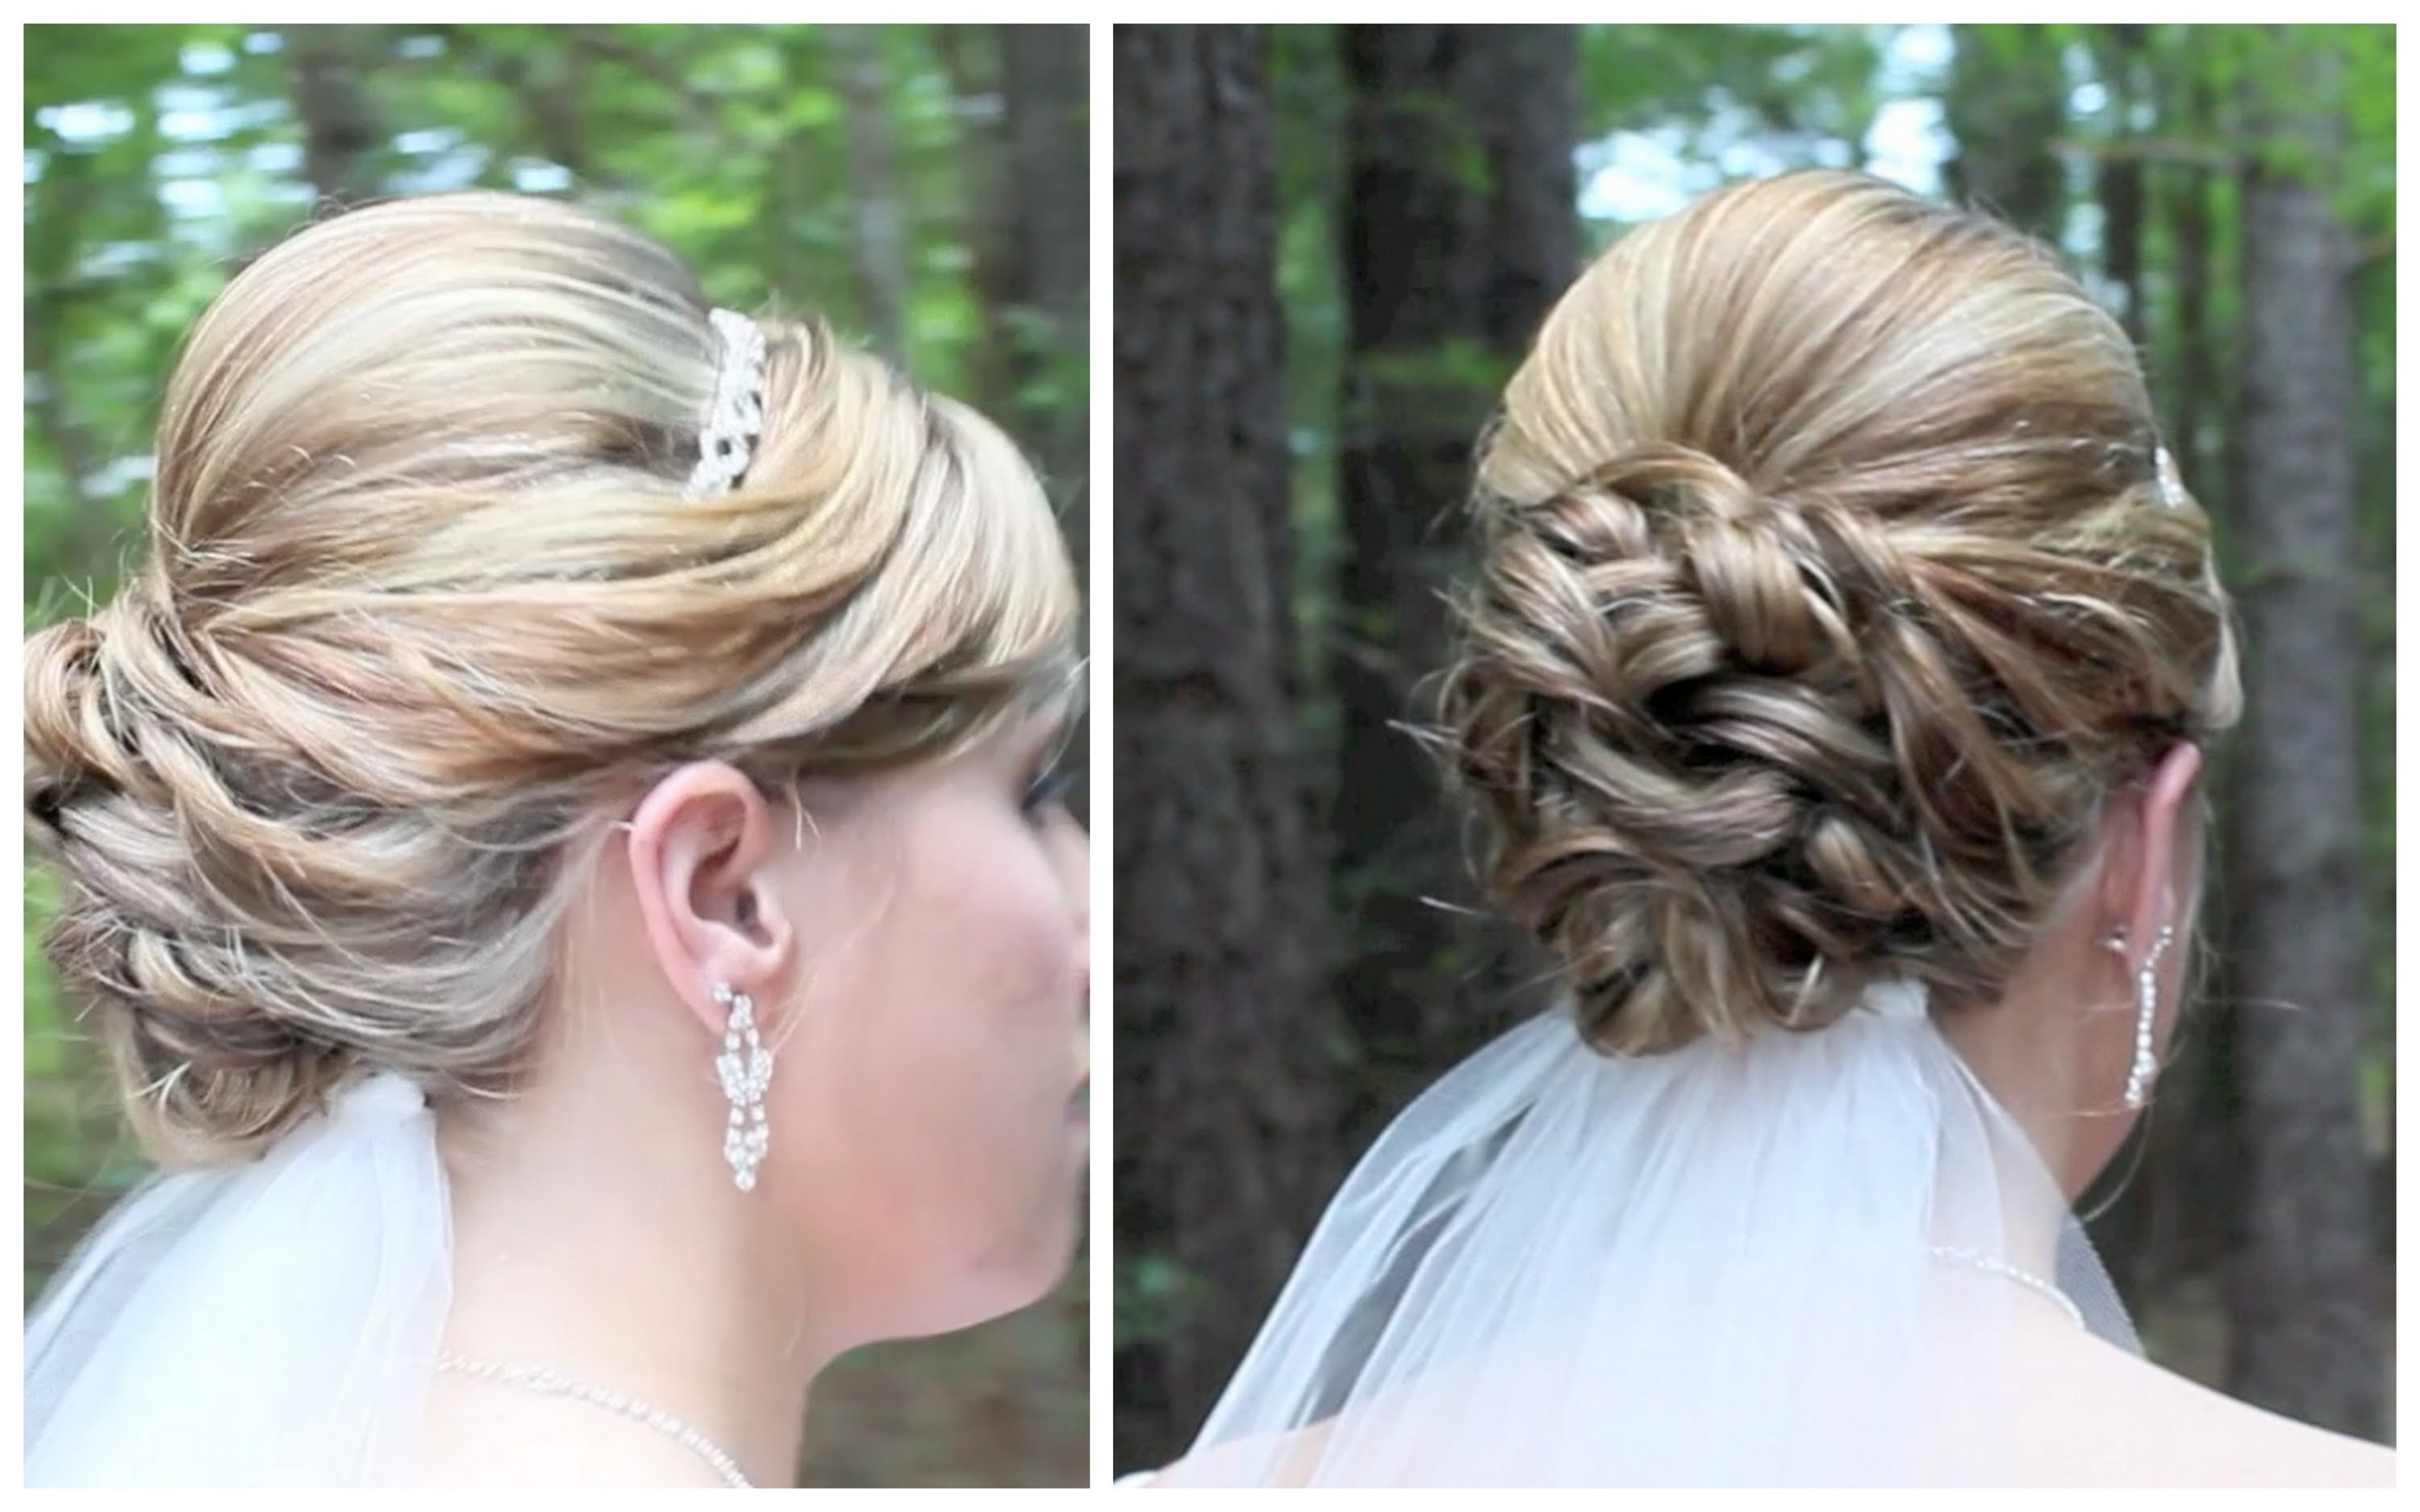 Bridal Updo On Shoulder Length Hair – Youtube With Regard To Most Up To Date Wedding Hairstyles For Medium Length Hair With Bangs (View 15 of 15)